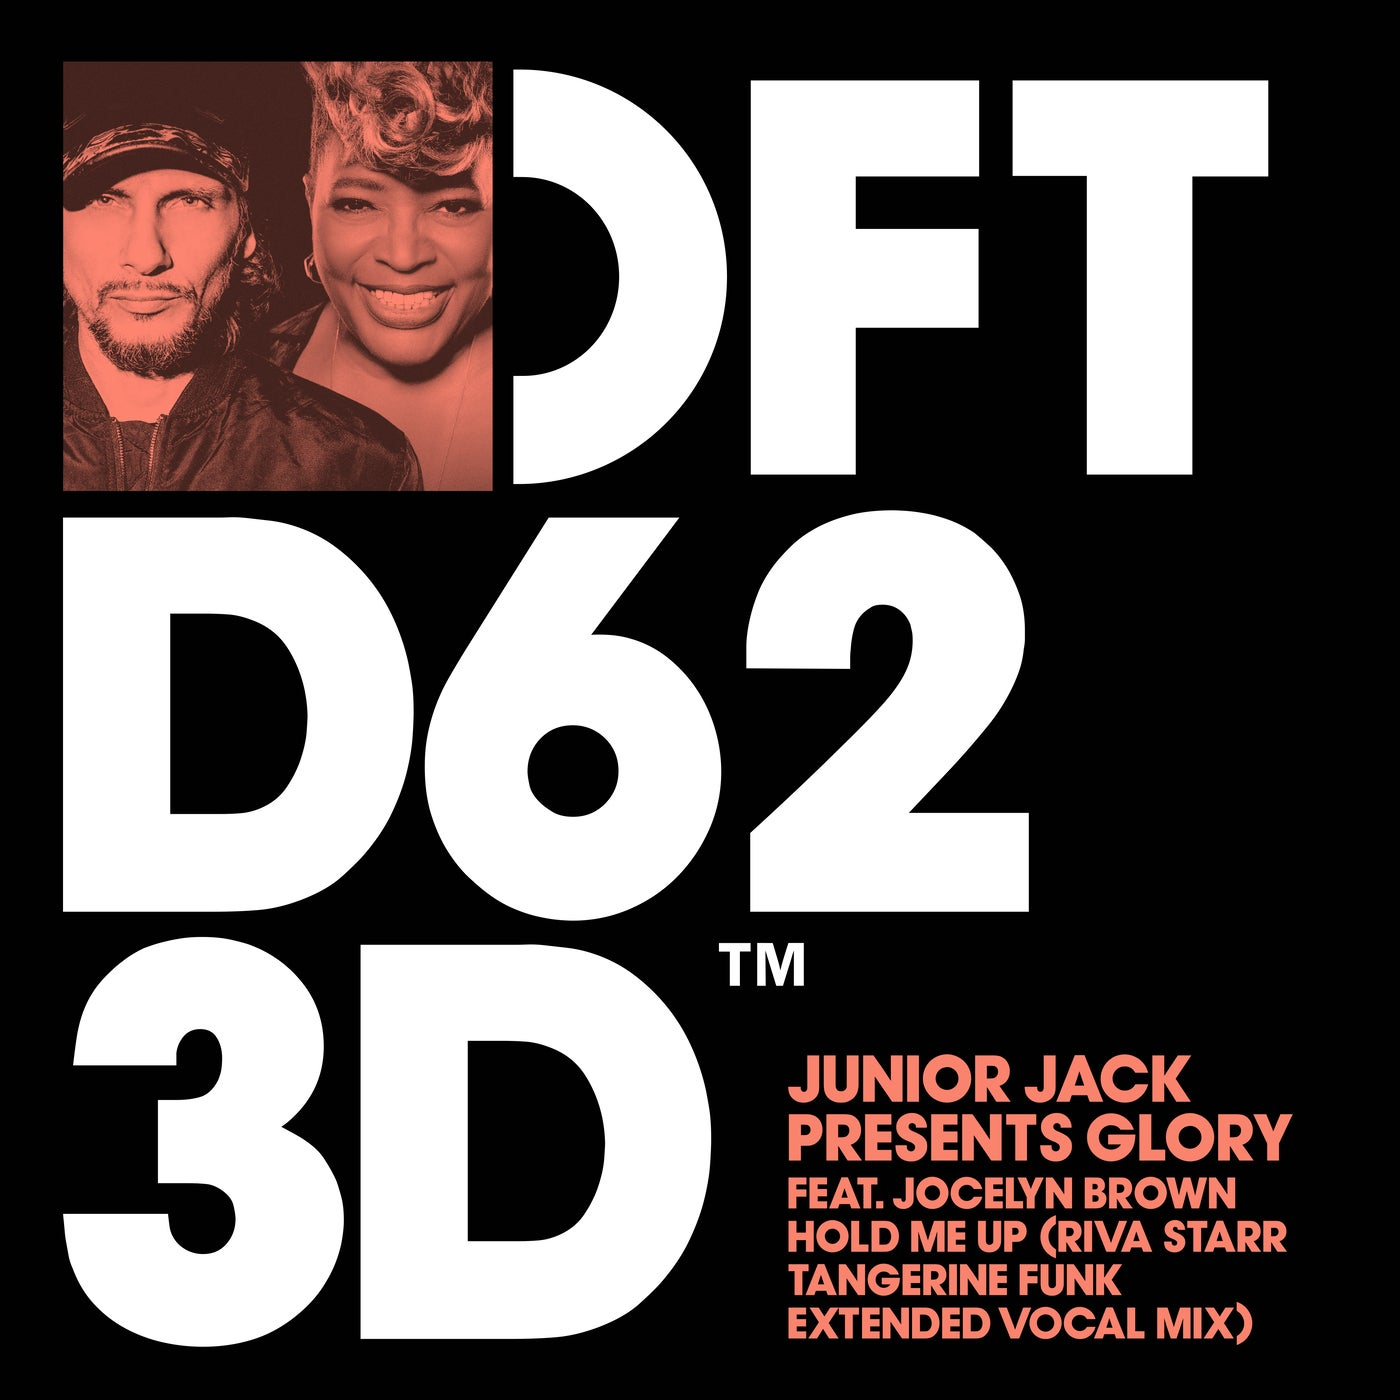 Hold Me Up feat. Jocelyn Brown (Riva Starr Tangerine Funk Extended Vocal Mix)